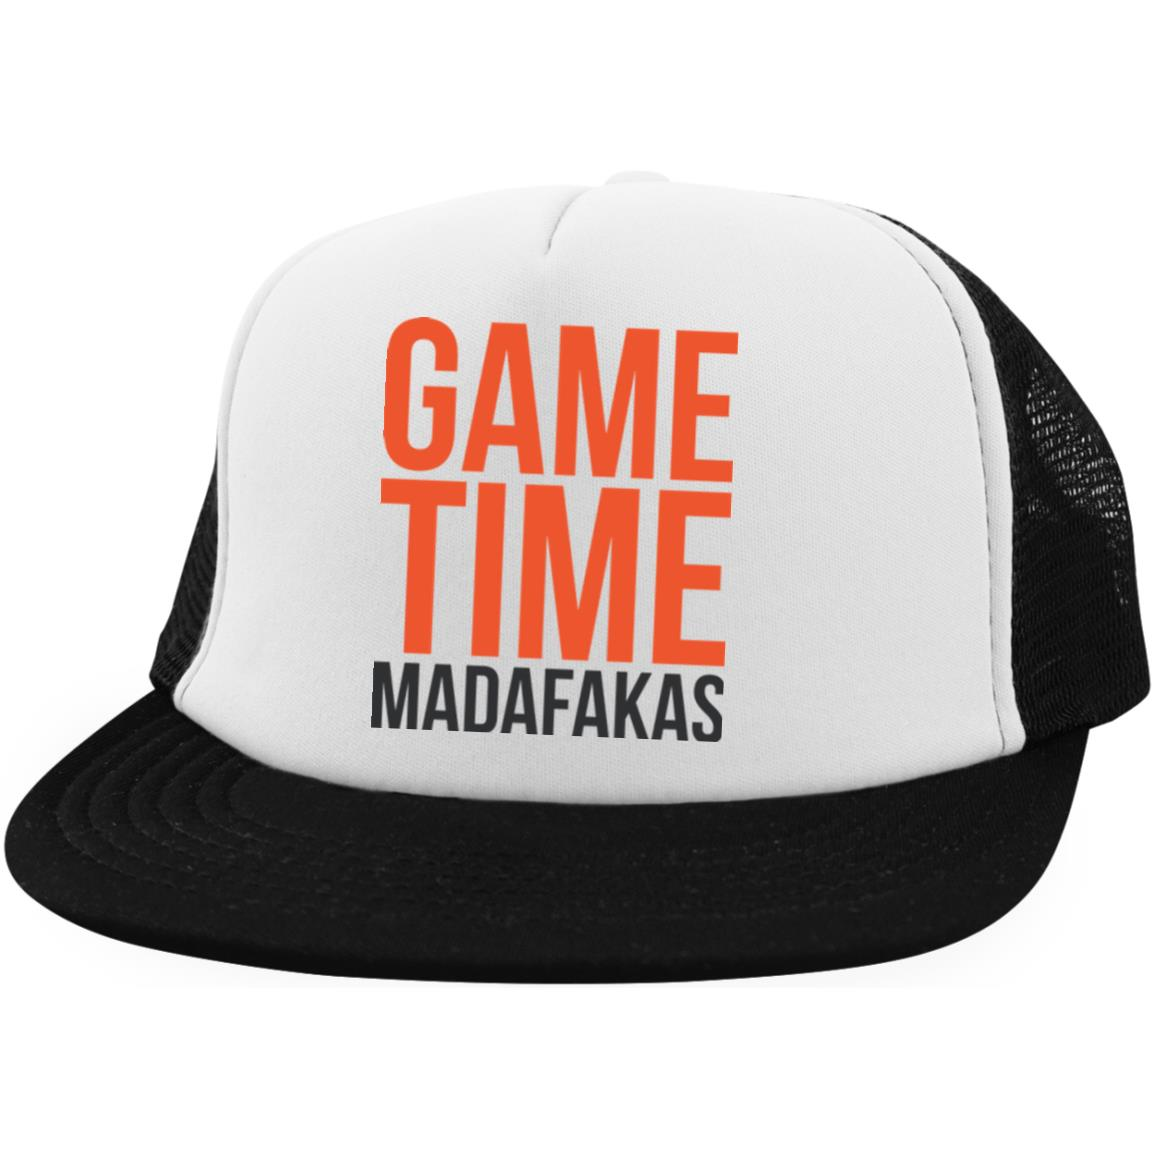 Game Time Madafakas Trucker Hat - gaming bestseller